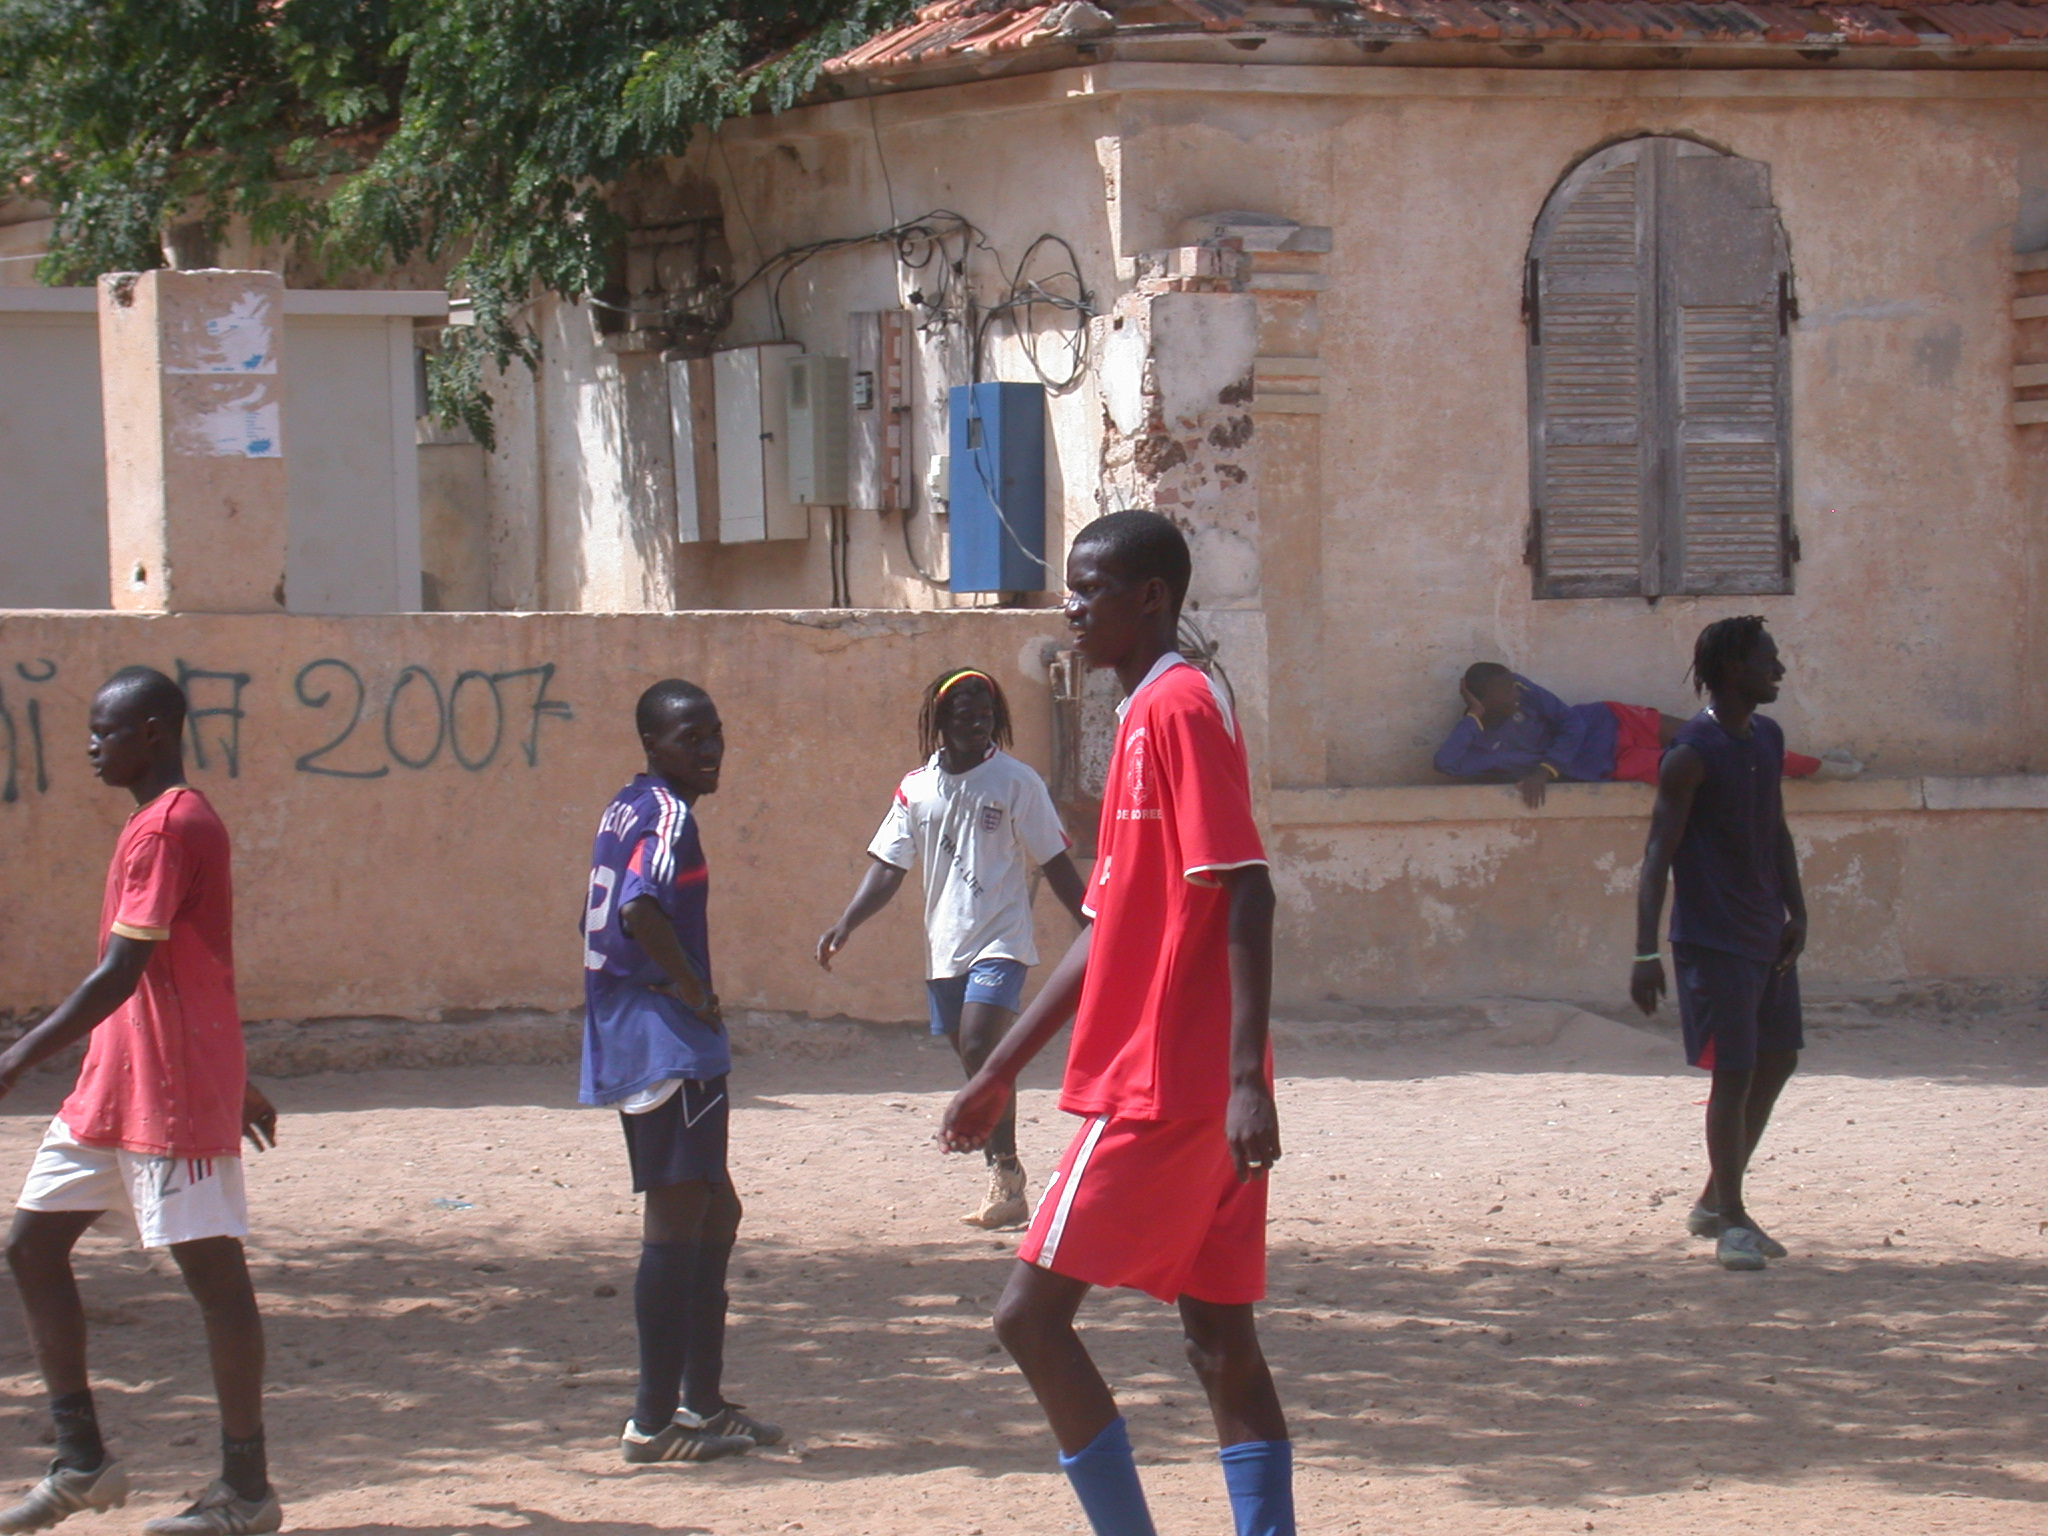 Young Guys Playing Soccer and One With Longhair, Ile de Goree, Dakar, Senegal